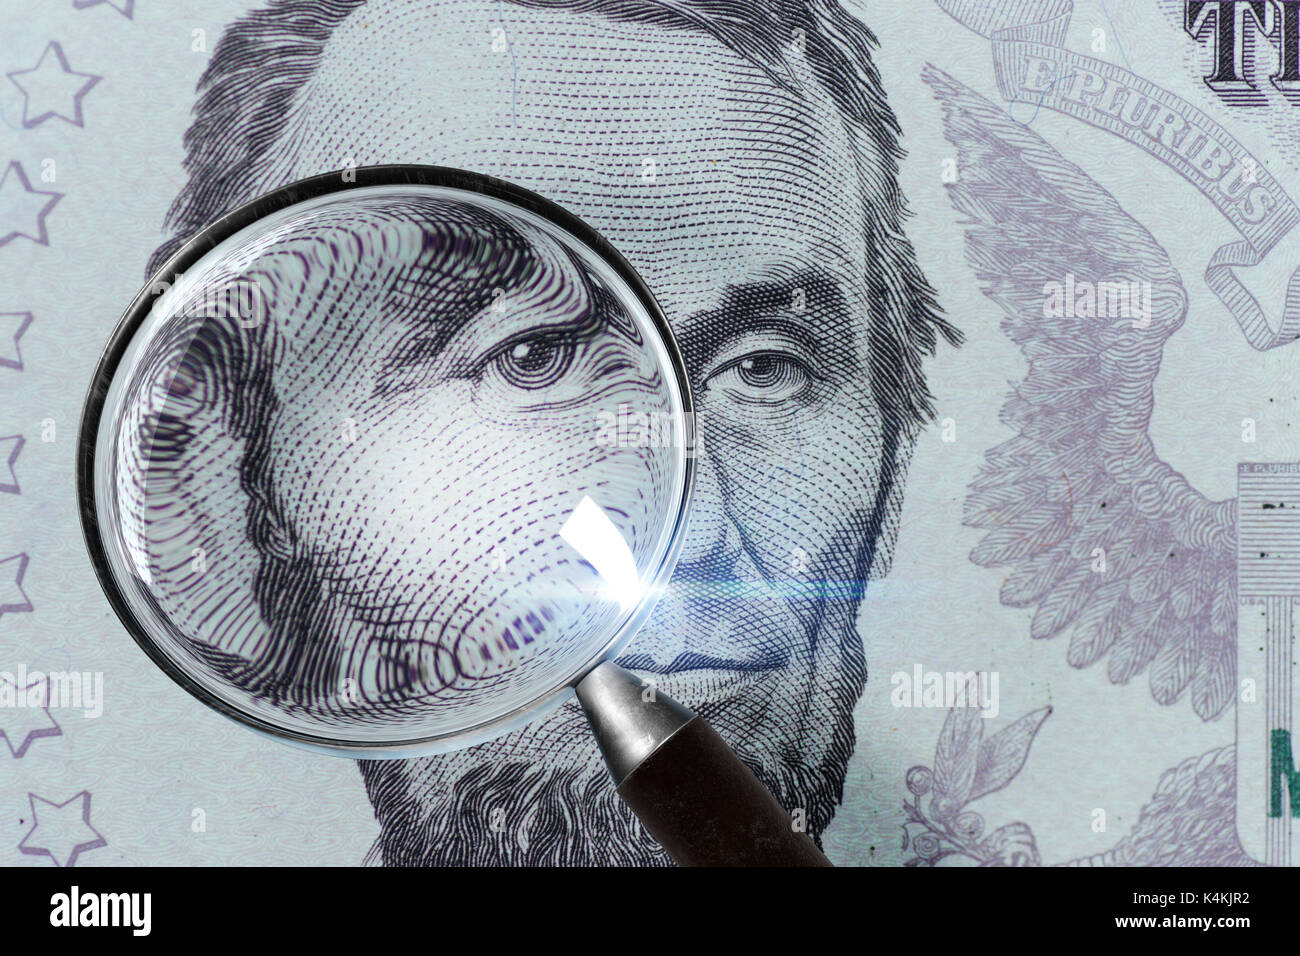 5 USD, US money close up under magnifying glass - Stock Image